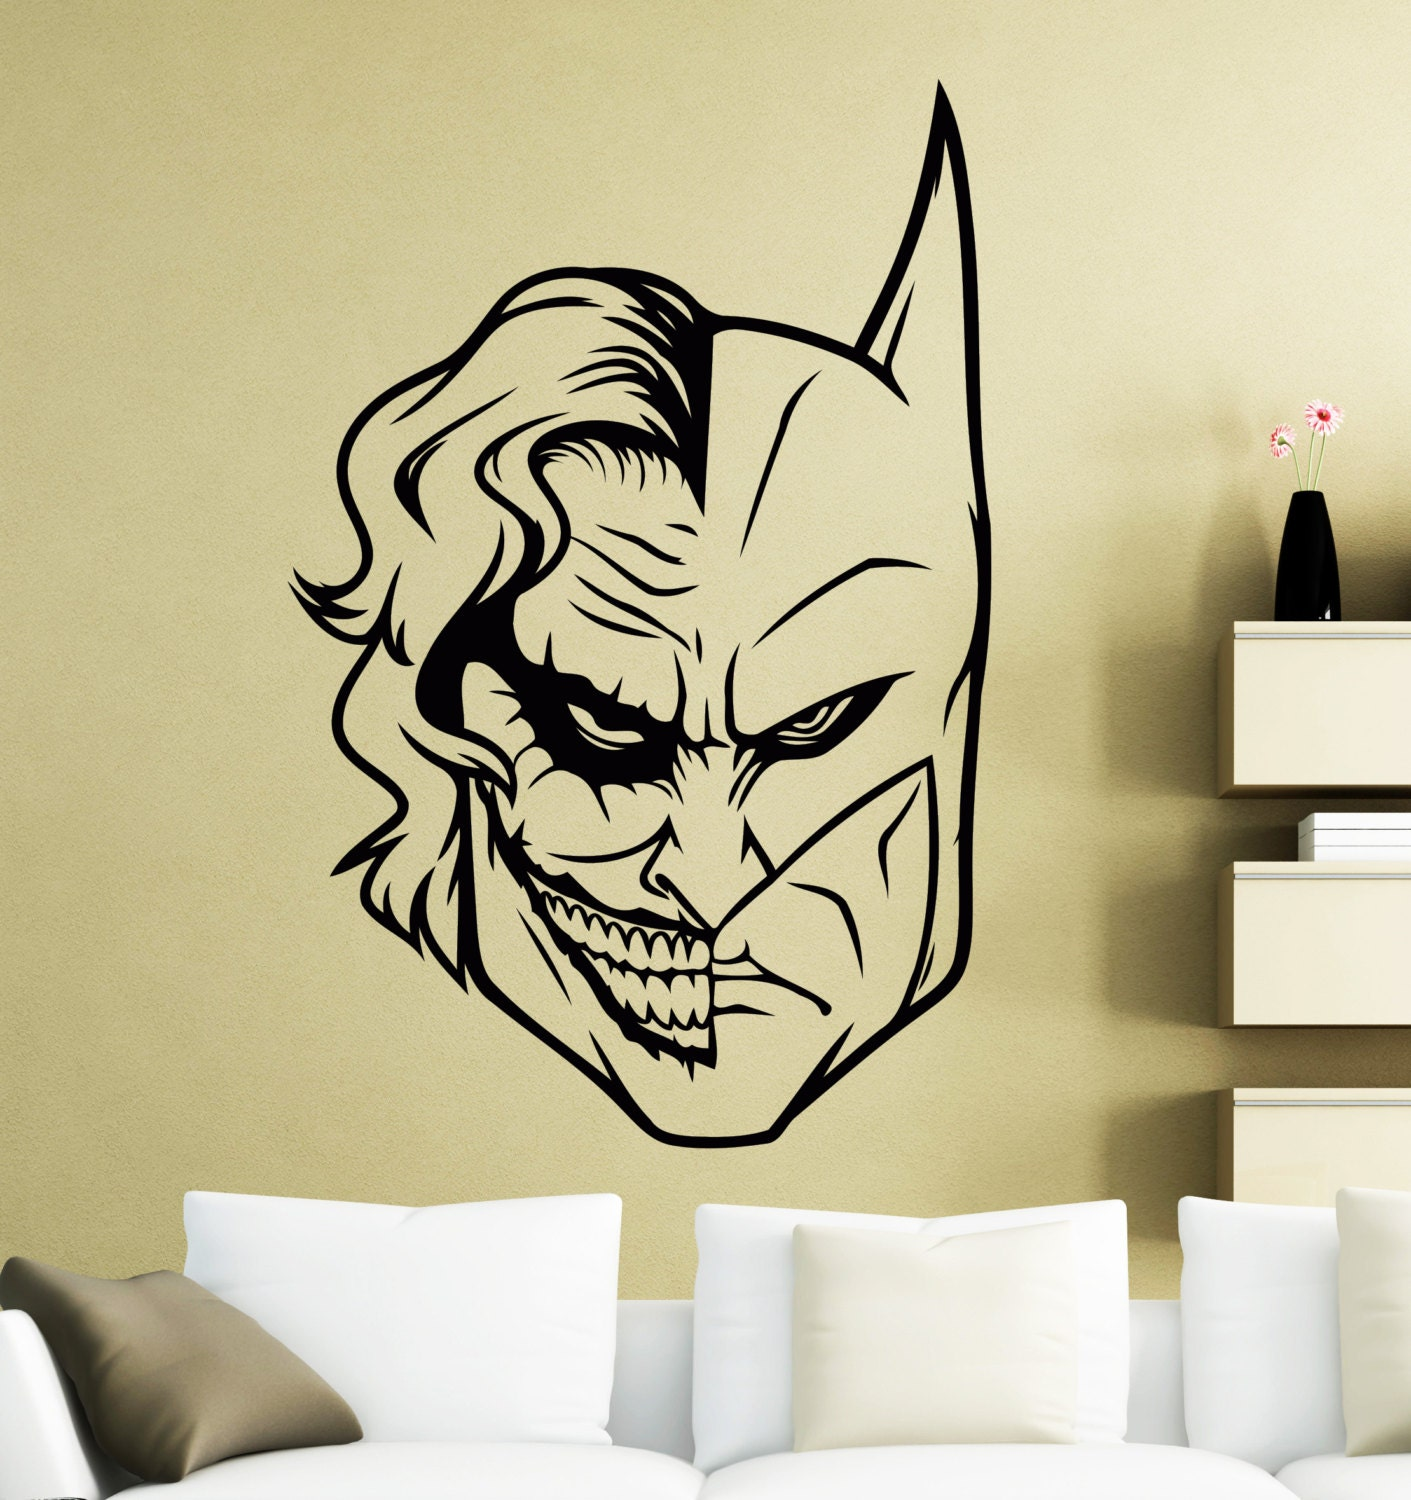 Batman Joker Wall Sticker Superhero DC Marvel Comics Vinyl